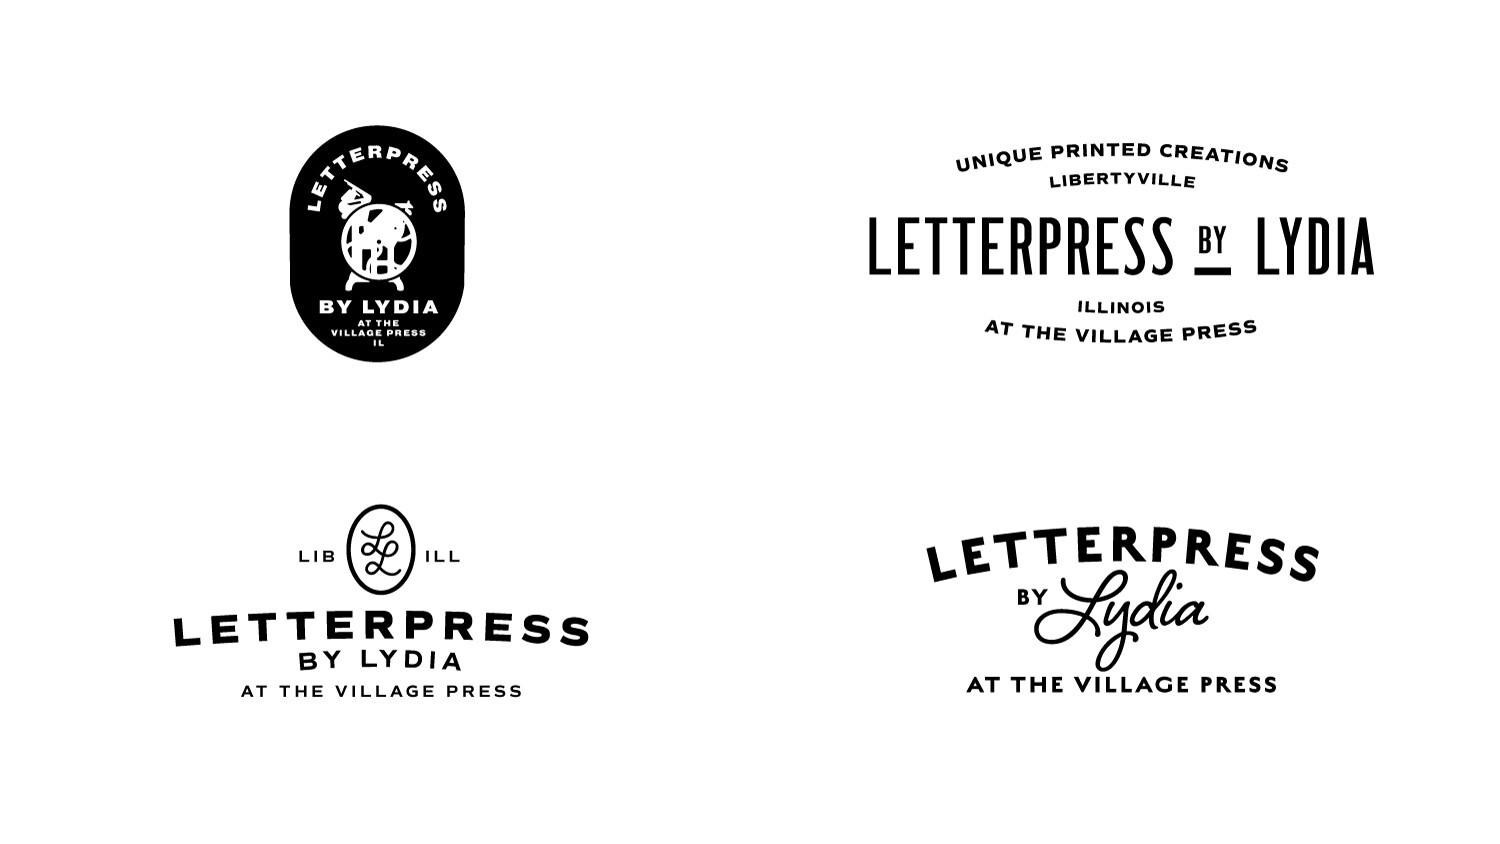 Early concepts for type and logo combinations